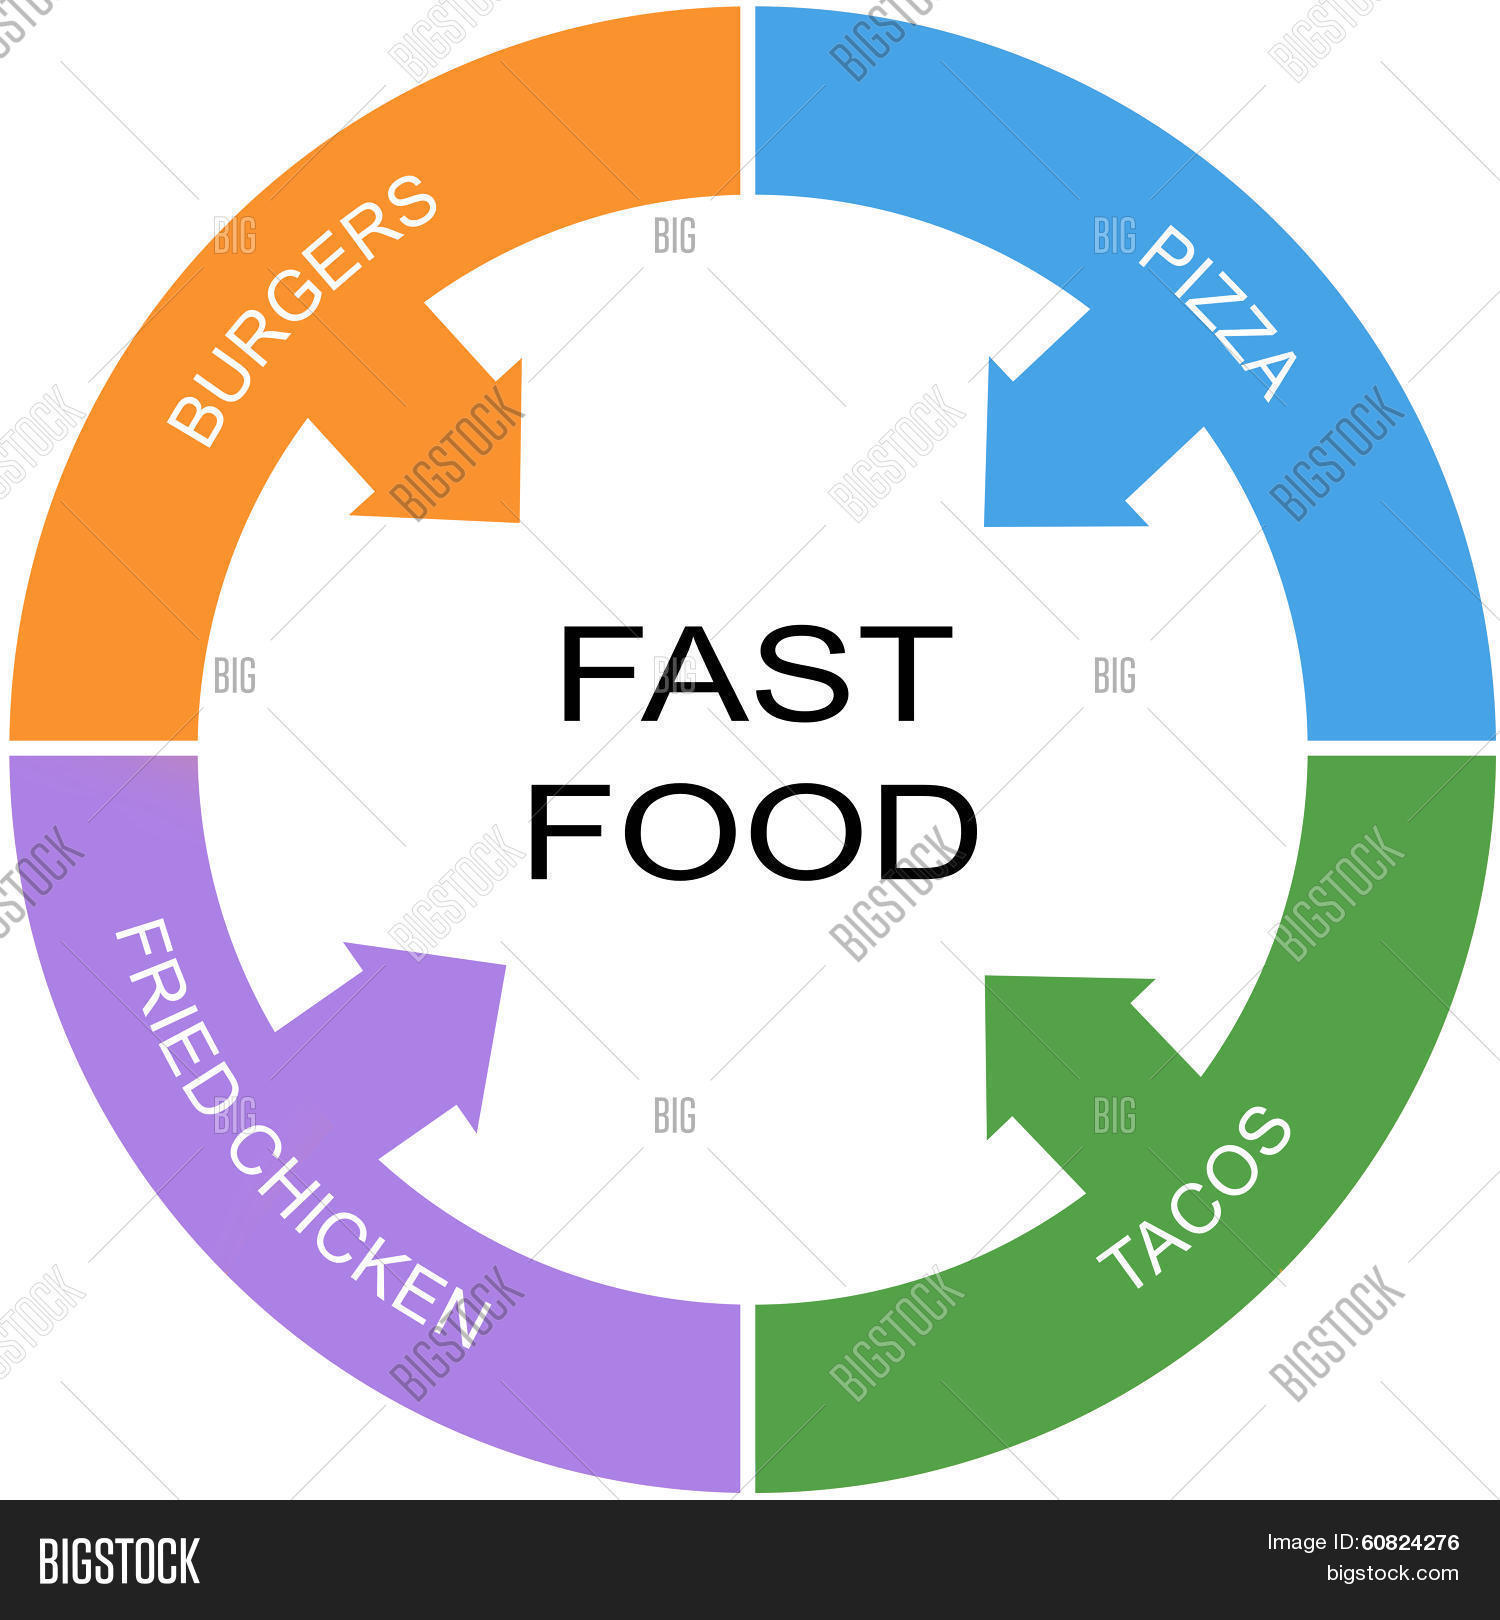 Fast Food Word Circle Image Amp Photo Free Trial